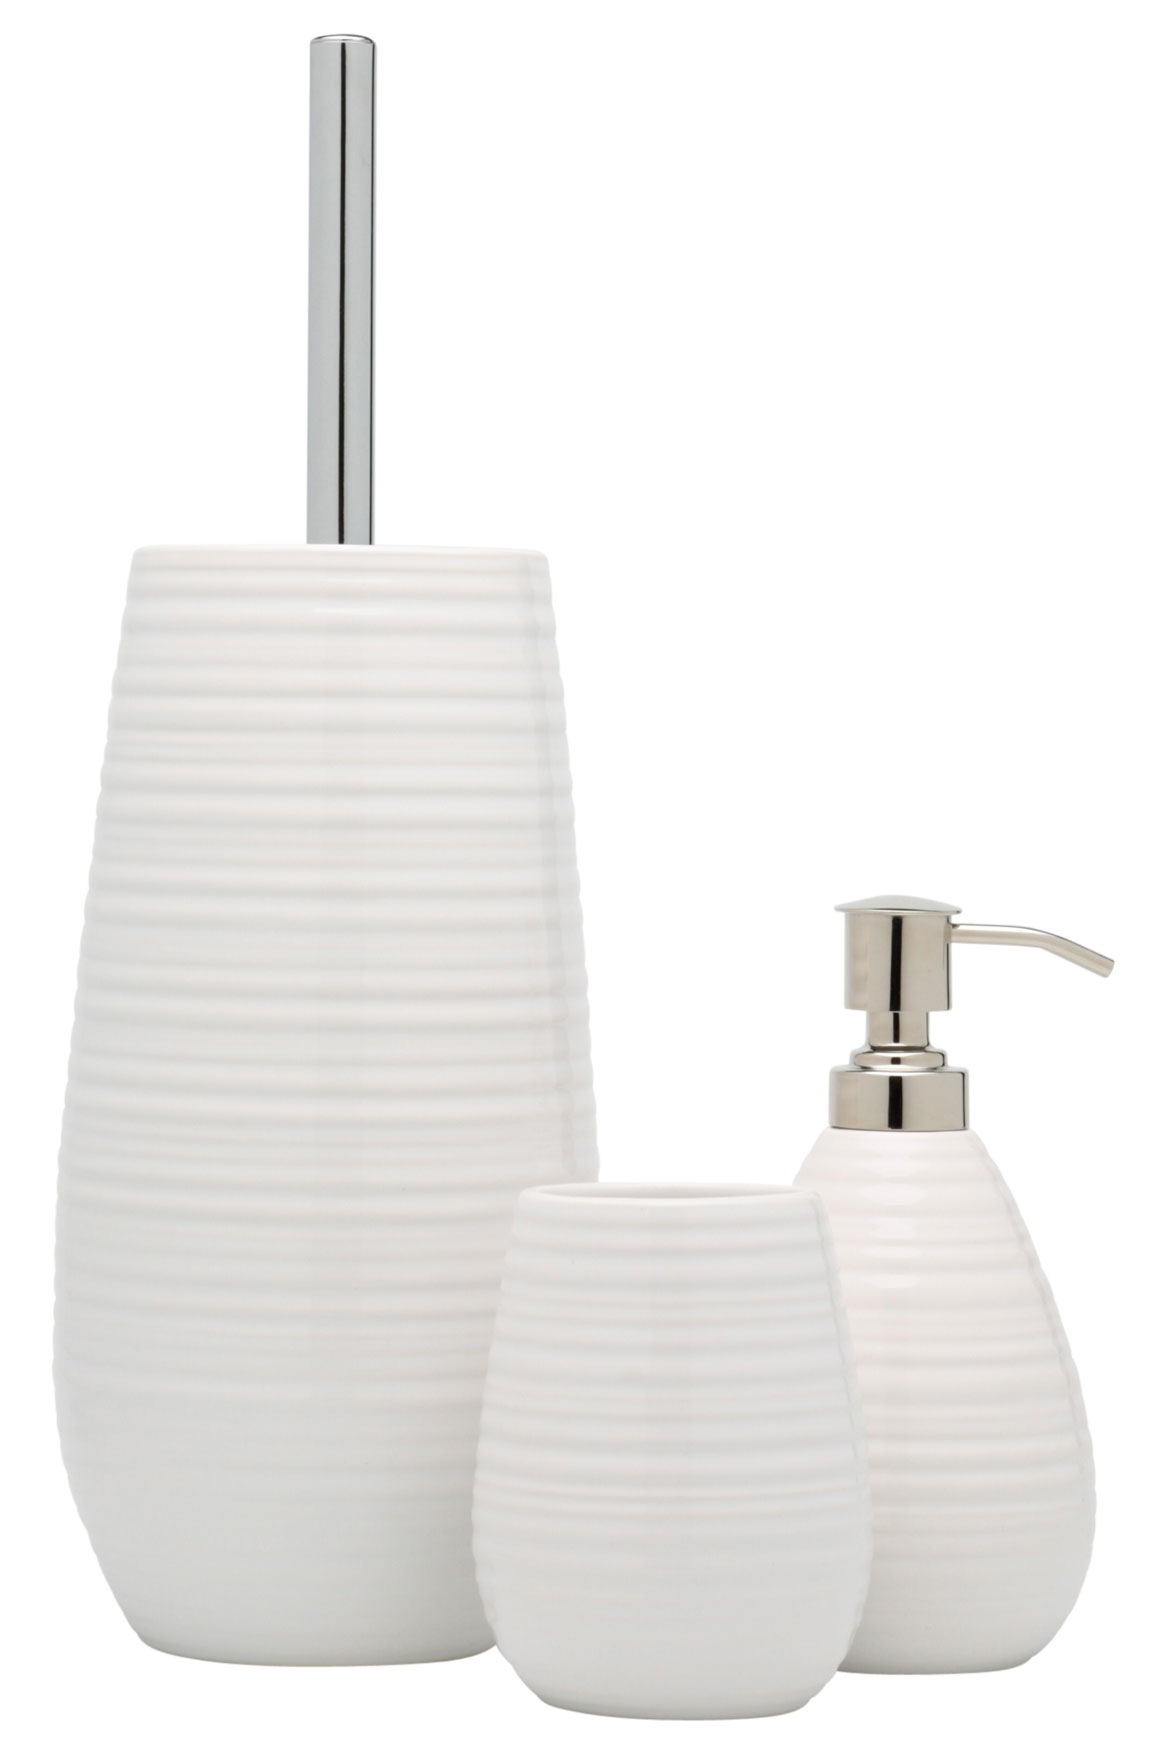 Australian house garden mosman toilet brush myer online for Bathroom accessories online australia